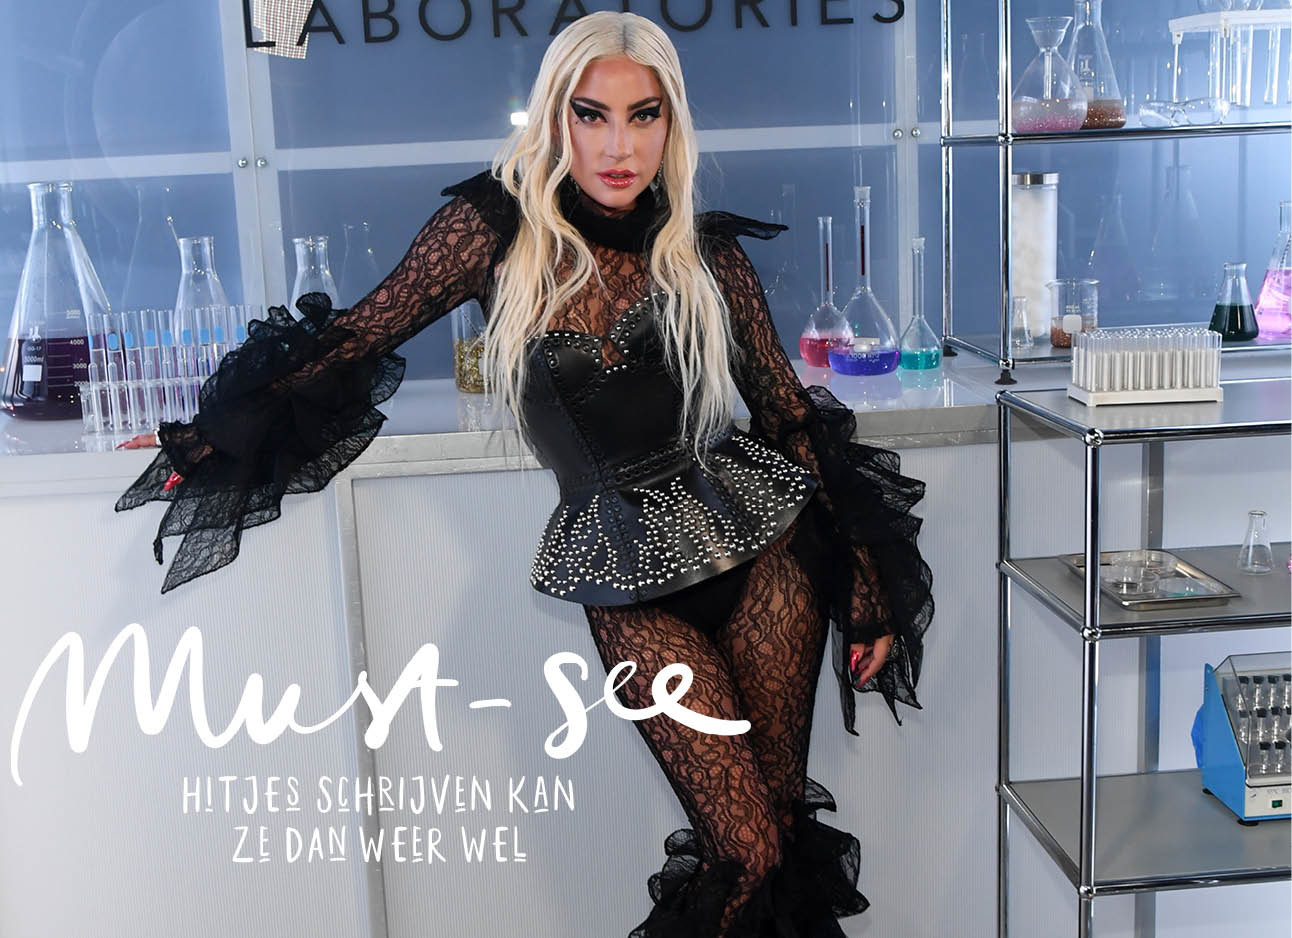 Lady Gaga in zwarte outfit kant